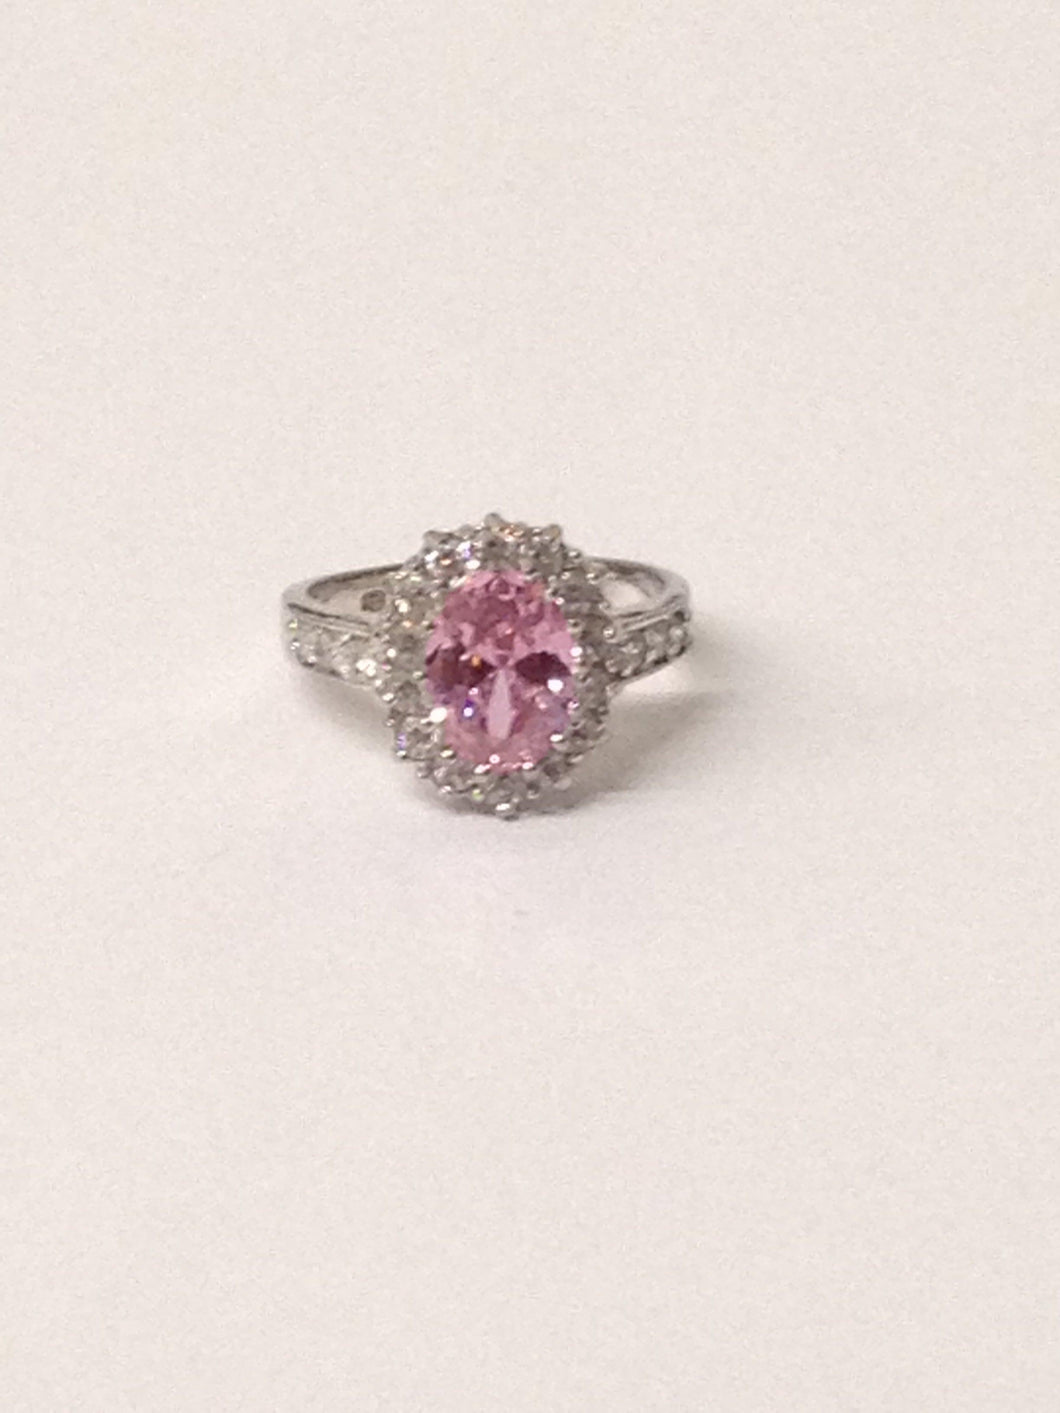 www.hersandhistreasures.com/products/Oval-Pink-CZ-Sterling-Silver-Ring